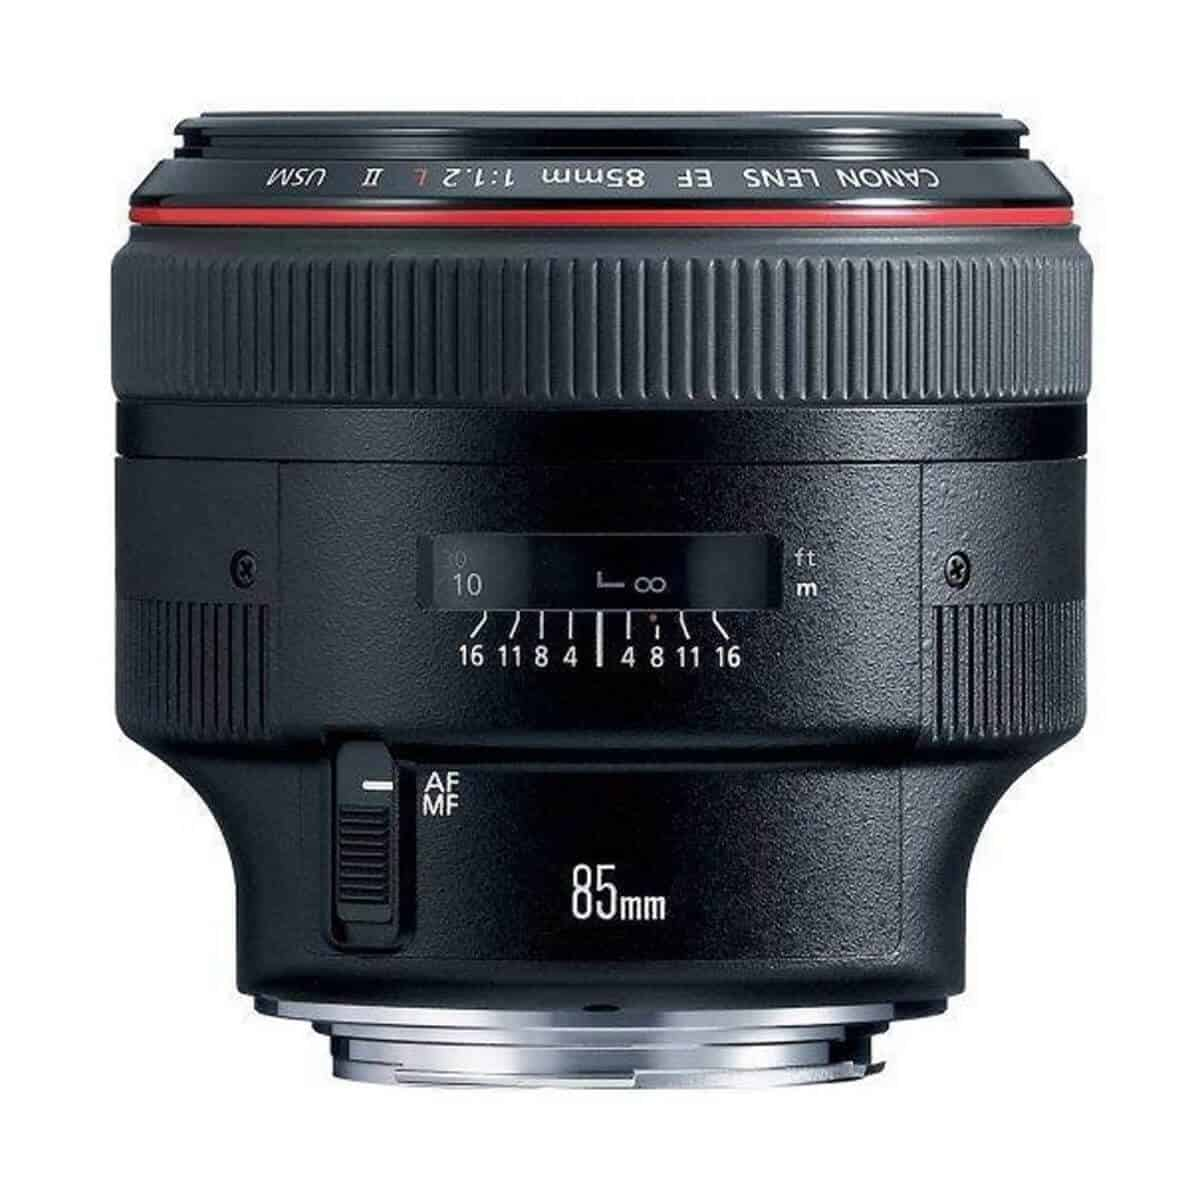 Side view of the Canon 85mm f/1.2 lens.